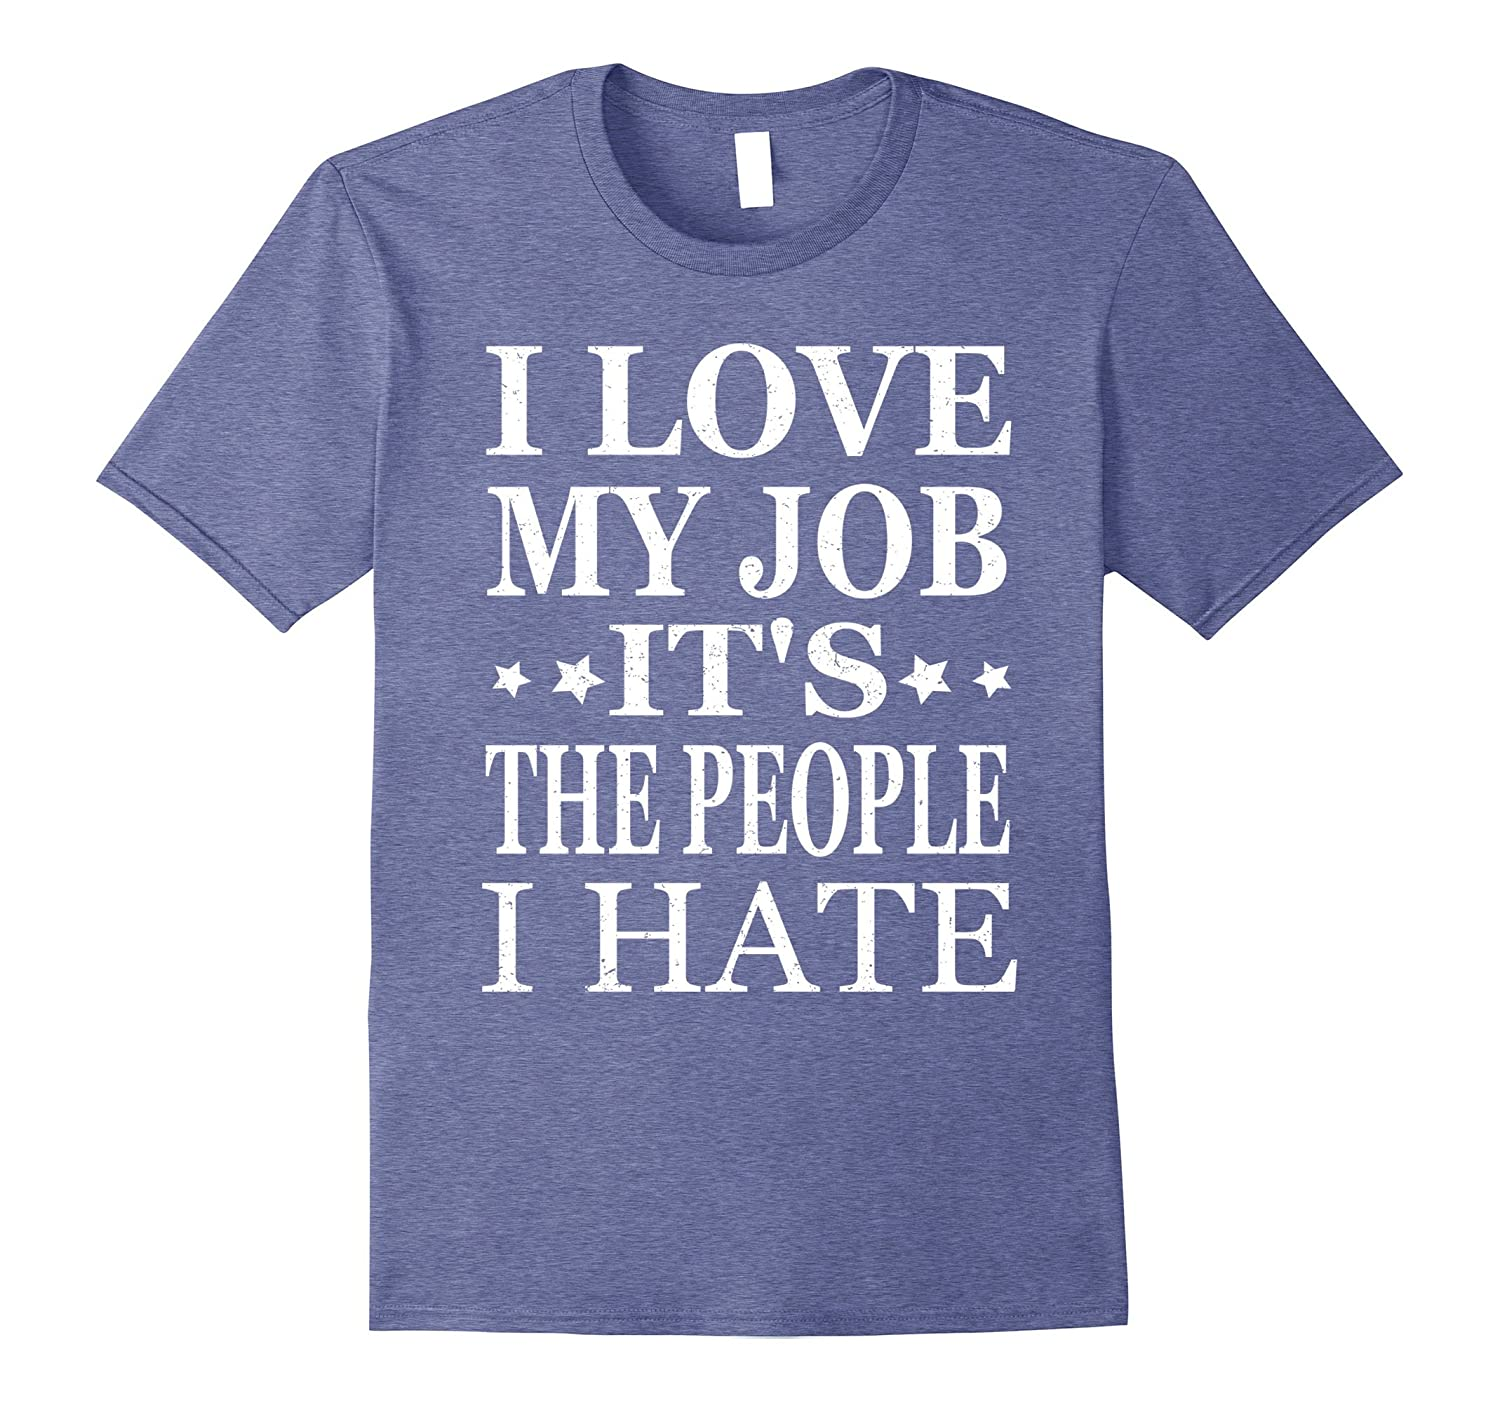 how to love my job that i hate